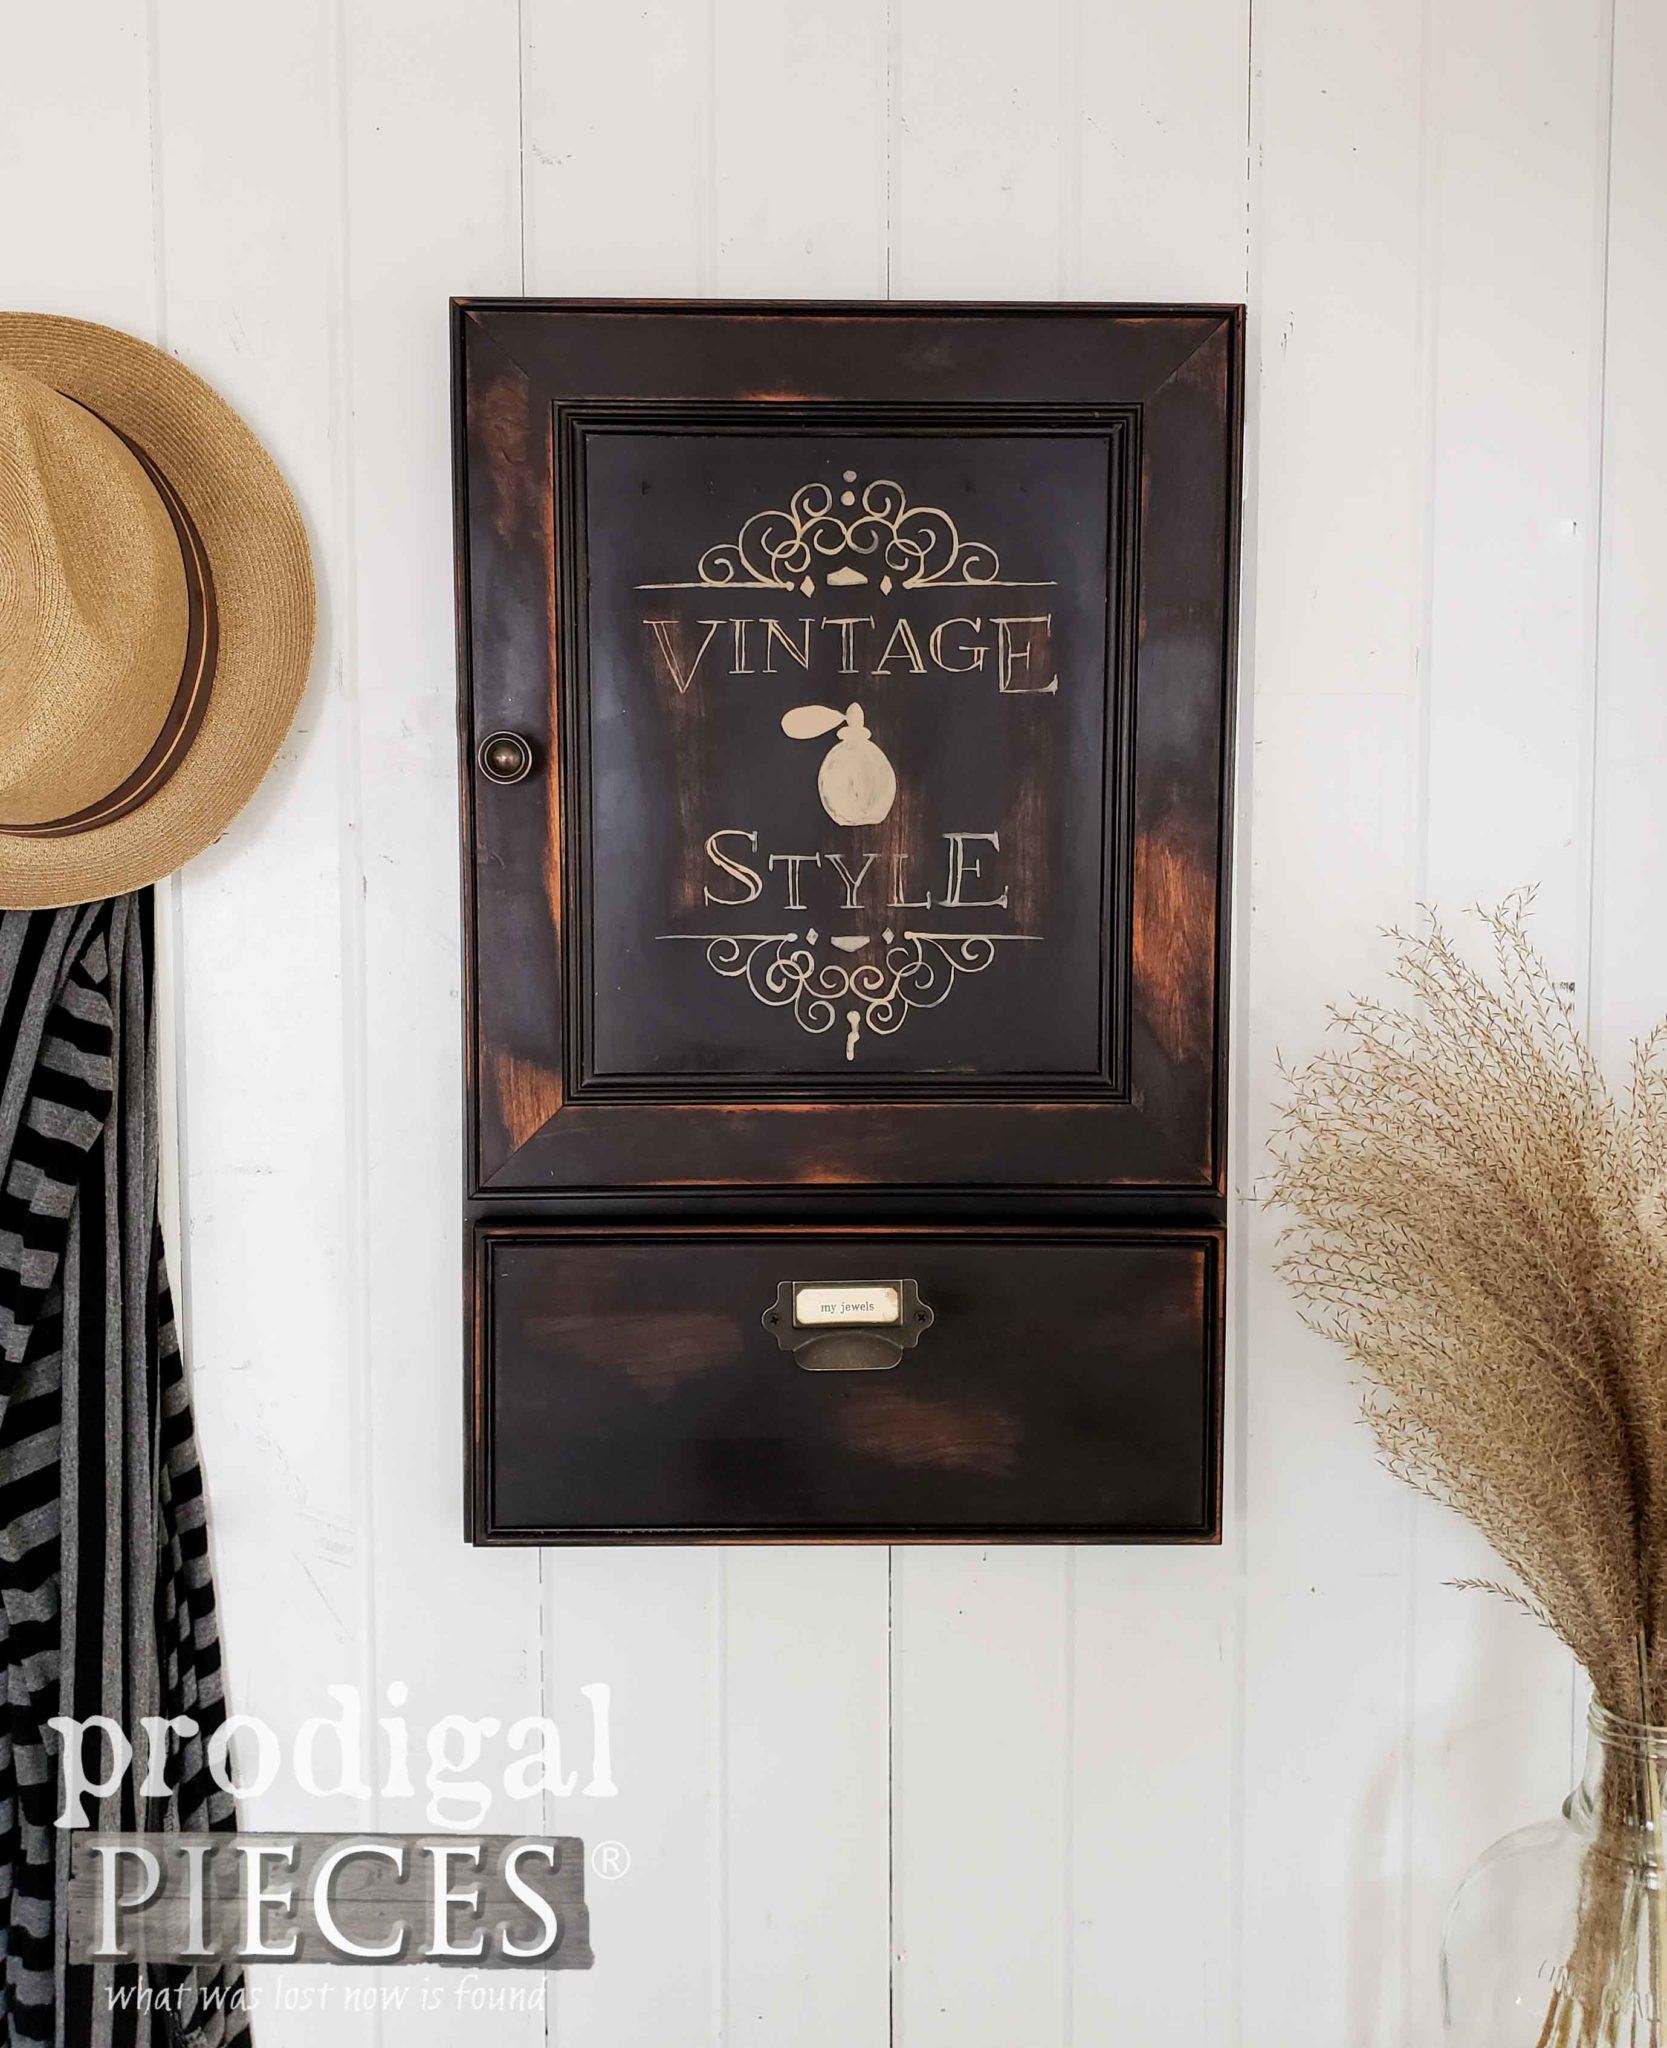 Handmade Vintage Style Jewelry Cabinet with Storage by Larissa of Prodigal Pieces | prodigalpieces.com